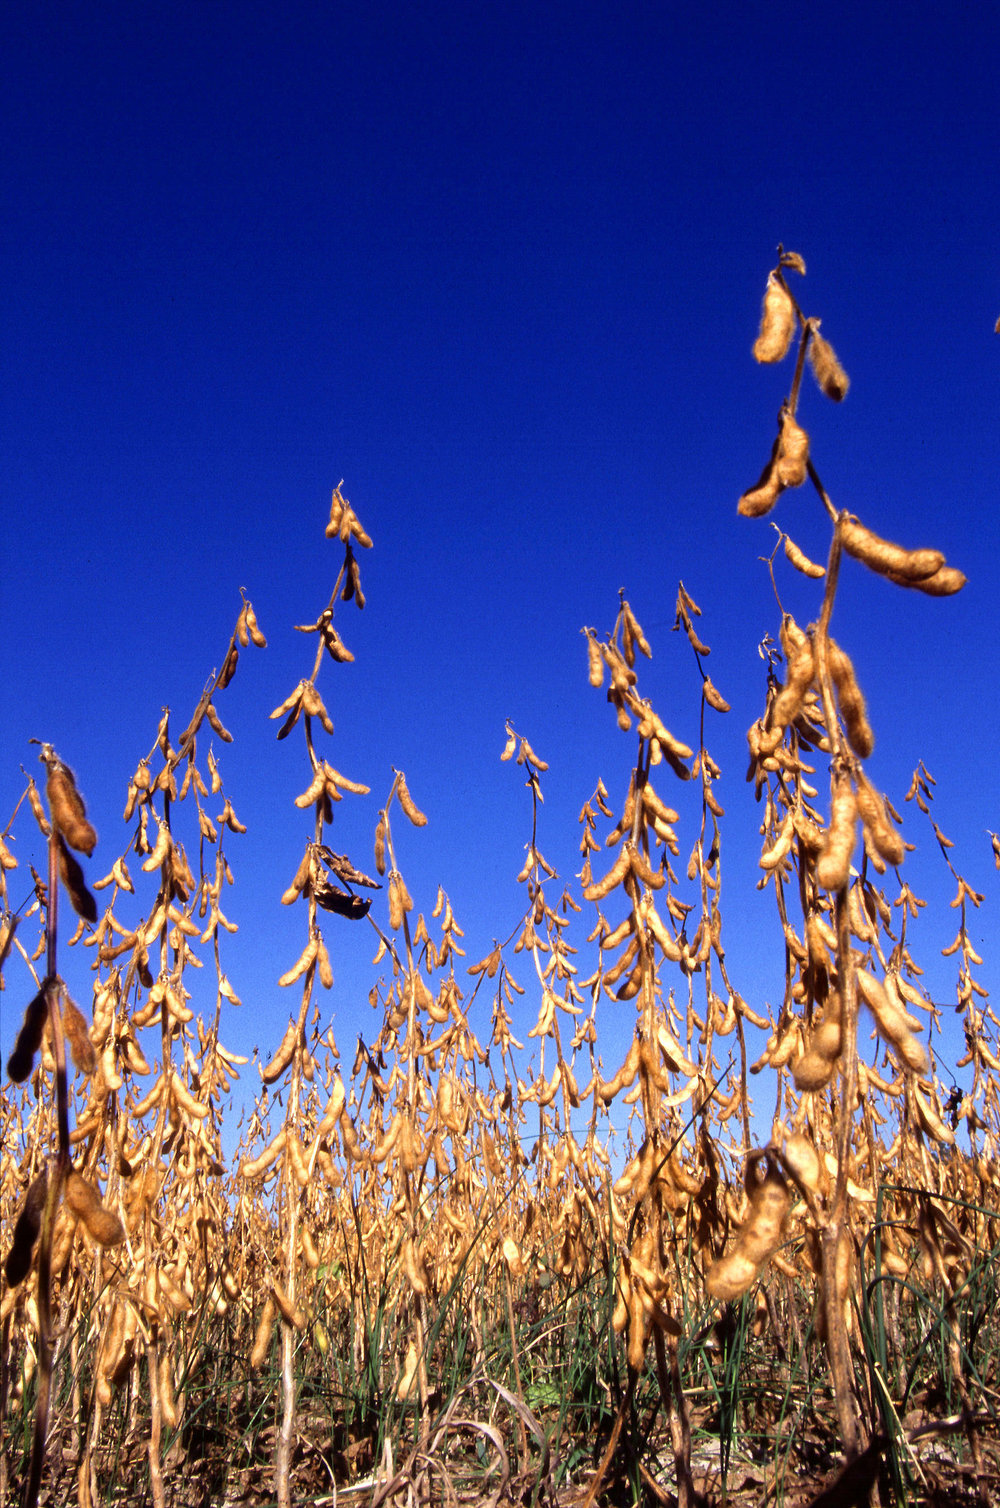 Soybeans ready for harvest.